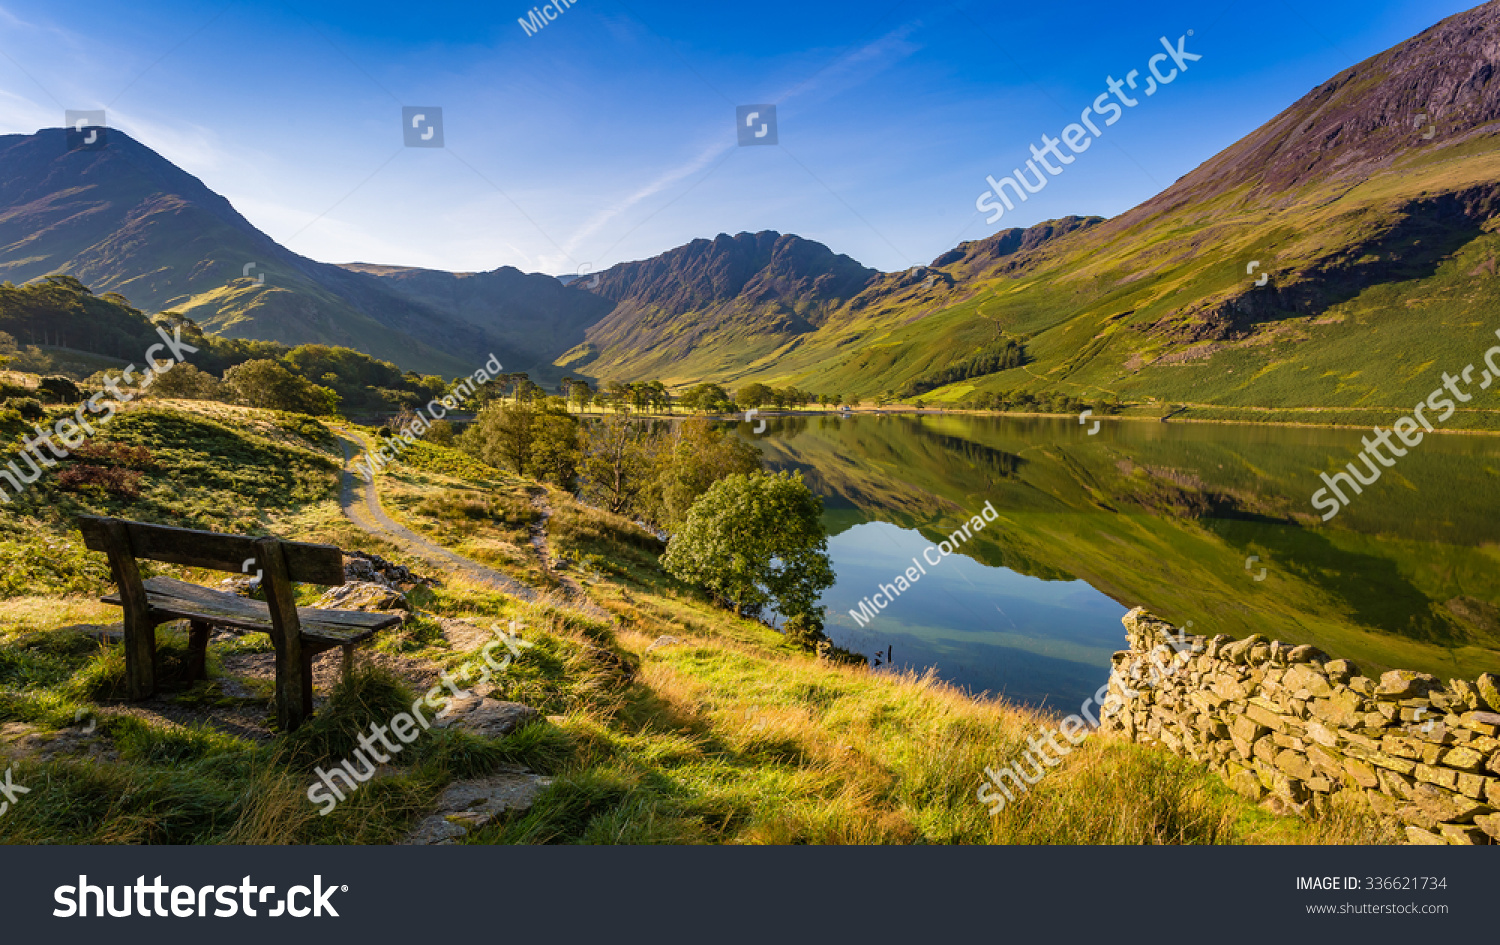 Early morning at Buttermere, The Lake District, Cumbria, England #336621734